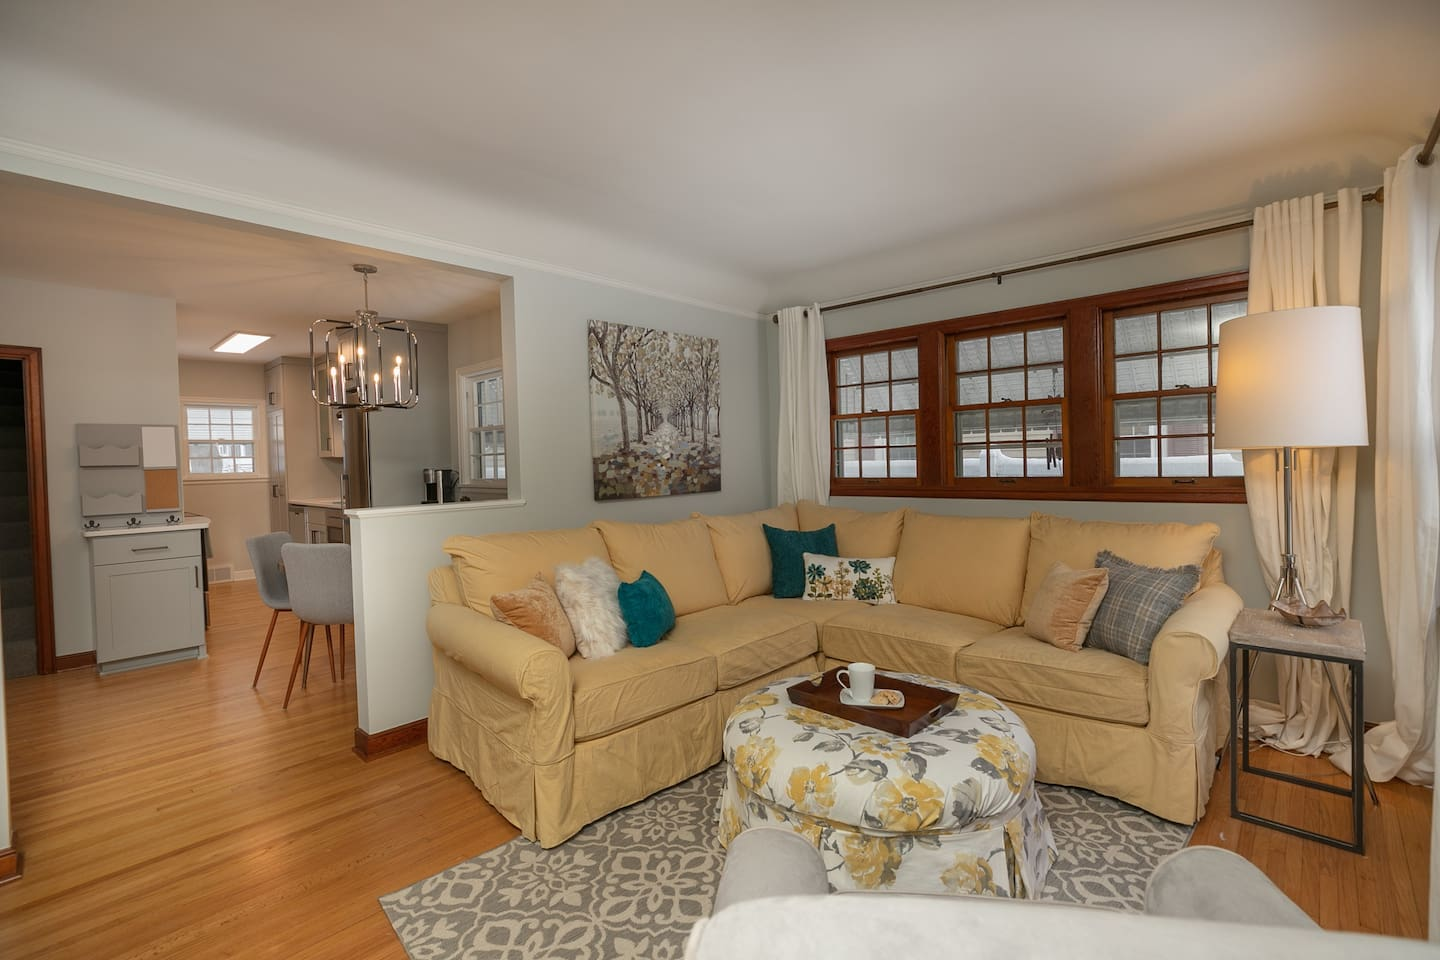 Welcome home!  One level living with easy access through kitchen, dining and living room, with two bedrooms and one bath, including laundry.